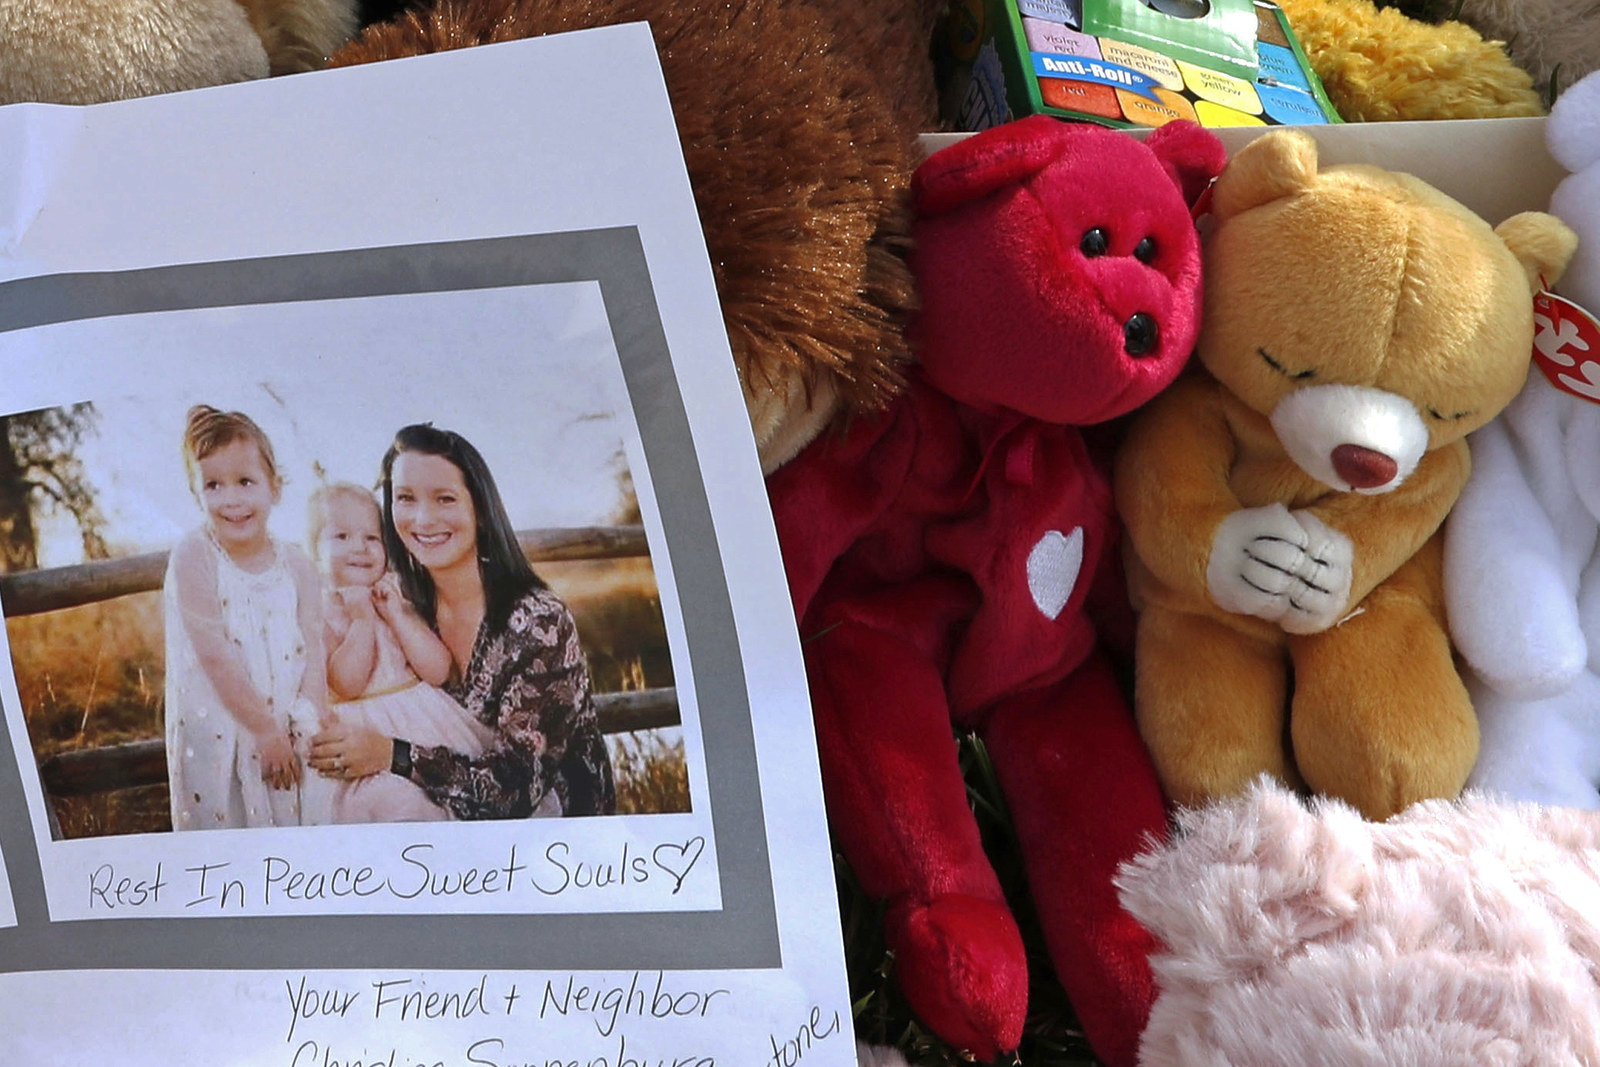 A makeshift memorial for Shanann Watts and her daughters, Bella and Celeste.